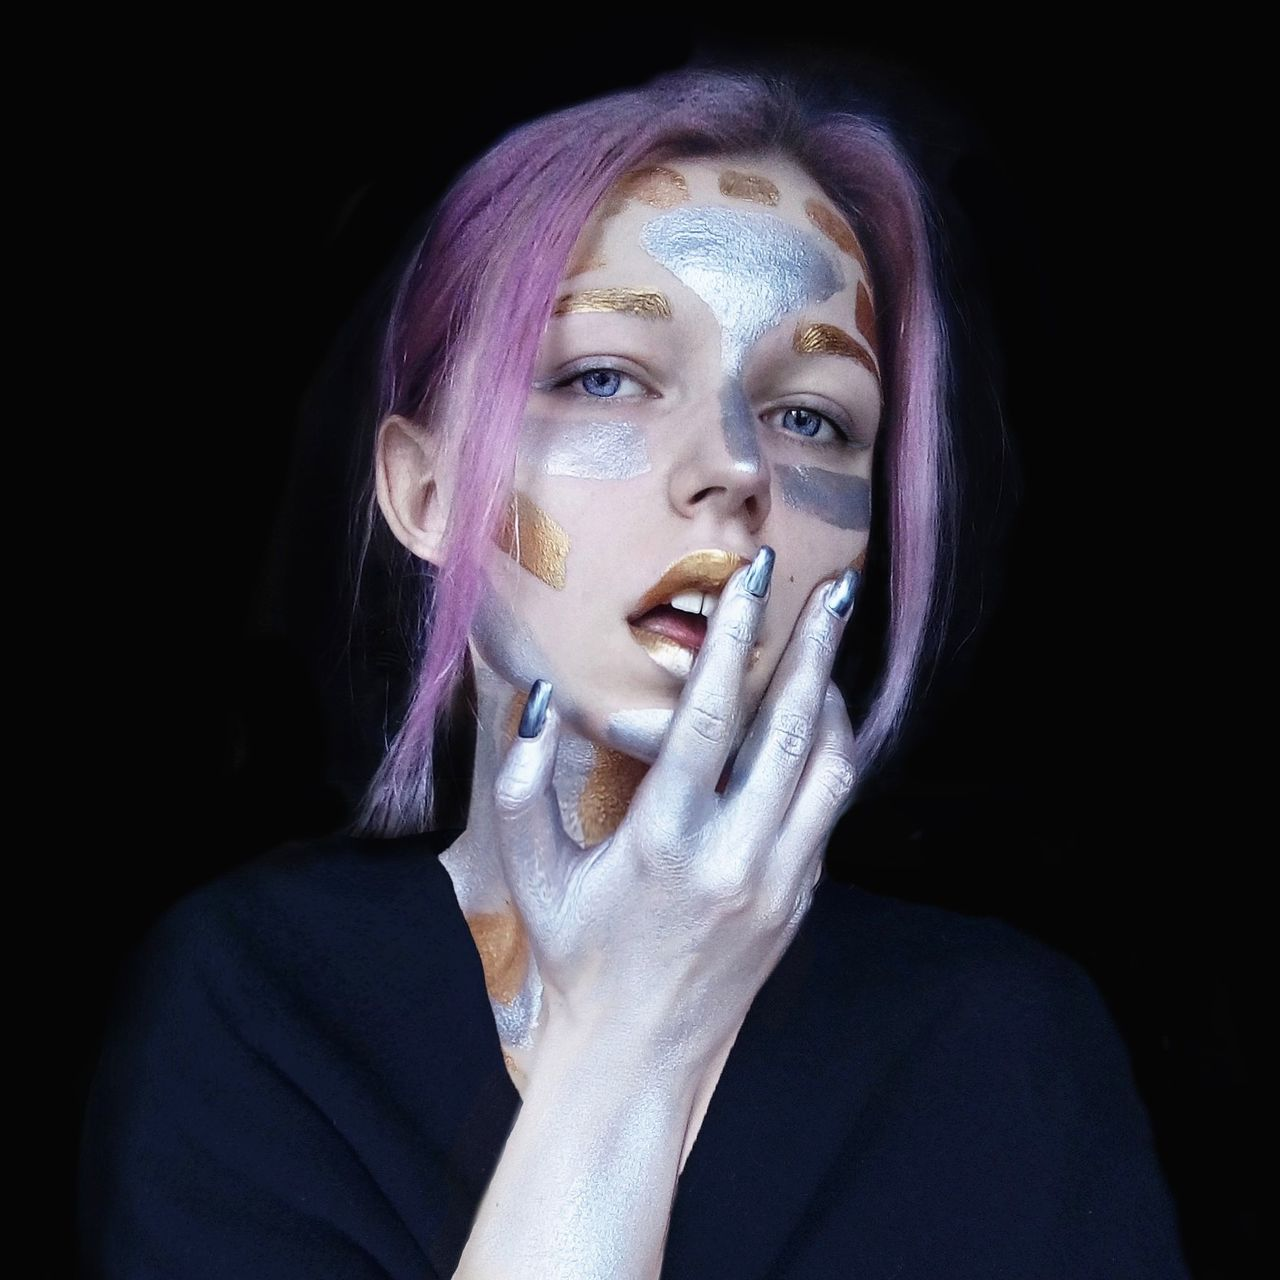 Close-up portrait of young woman with face paint against black background